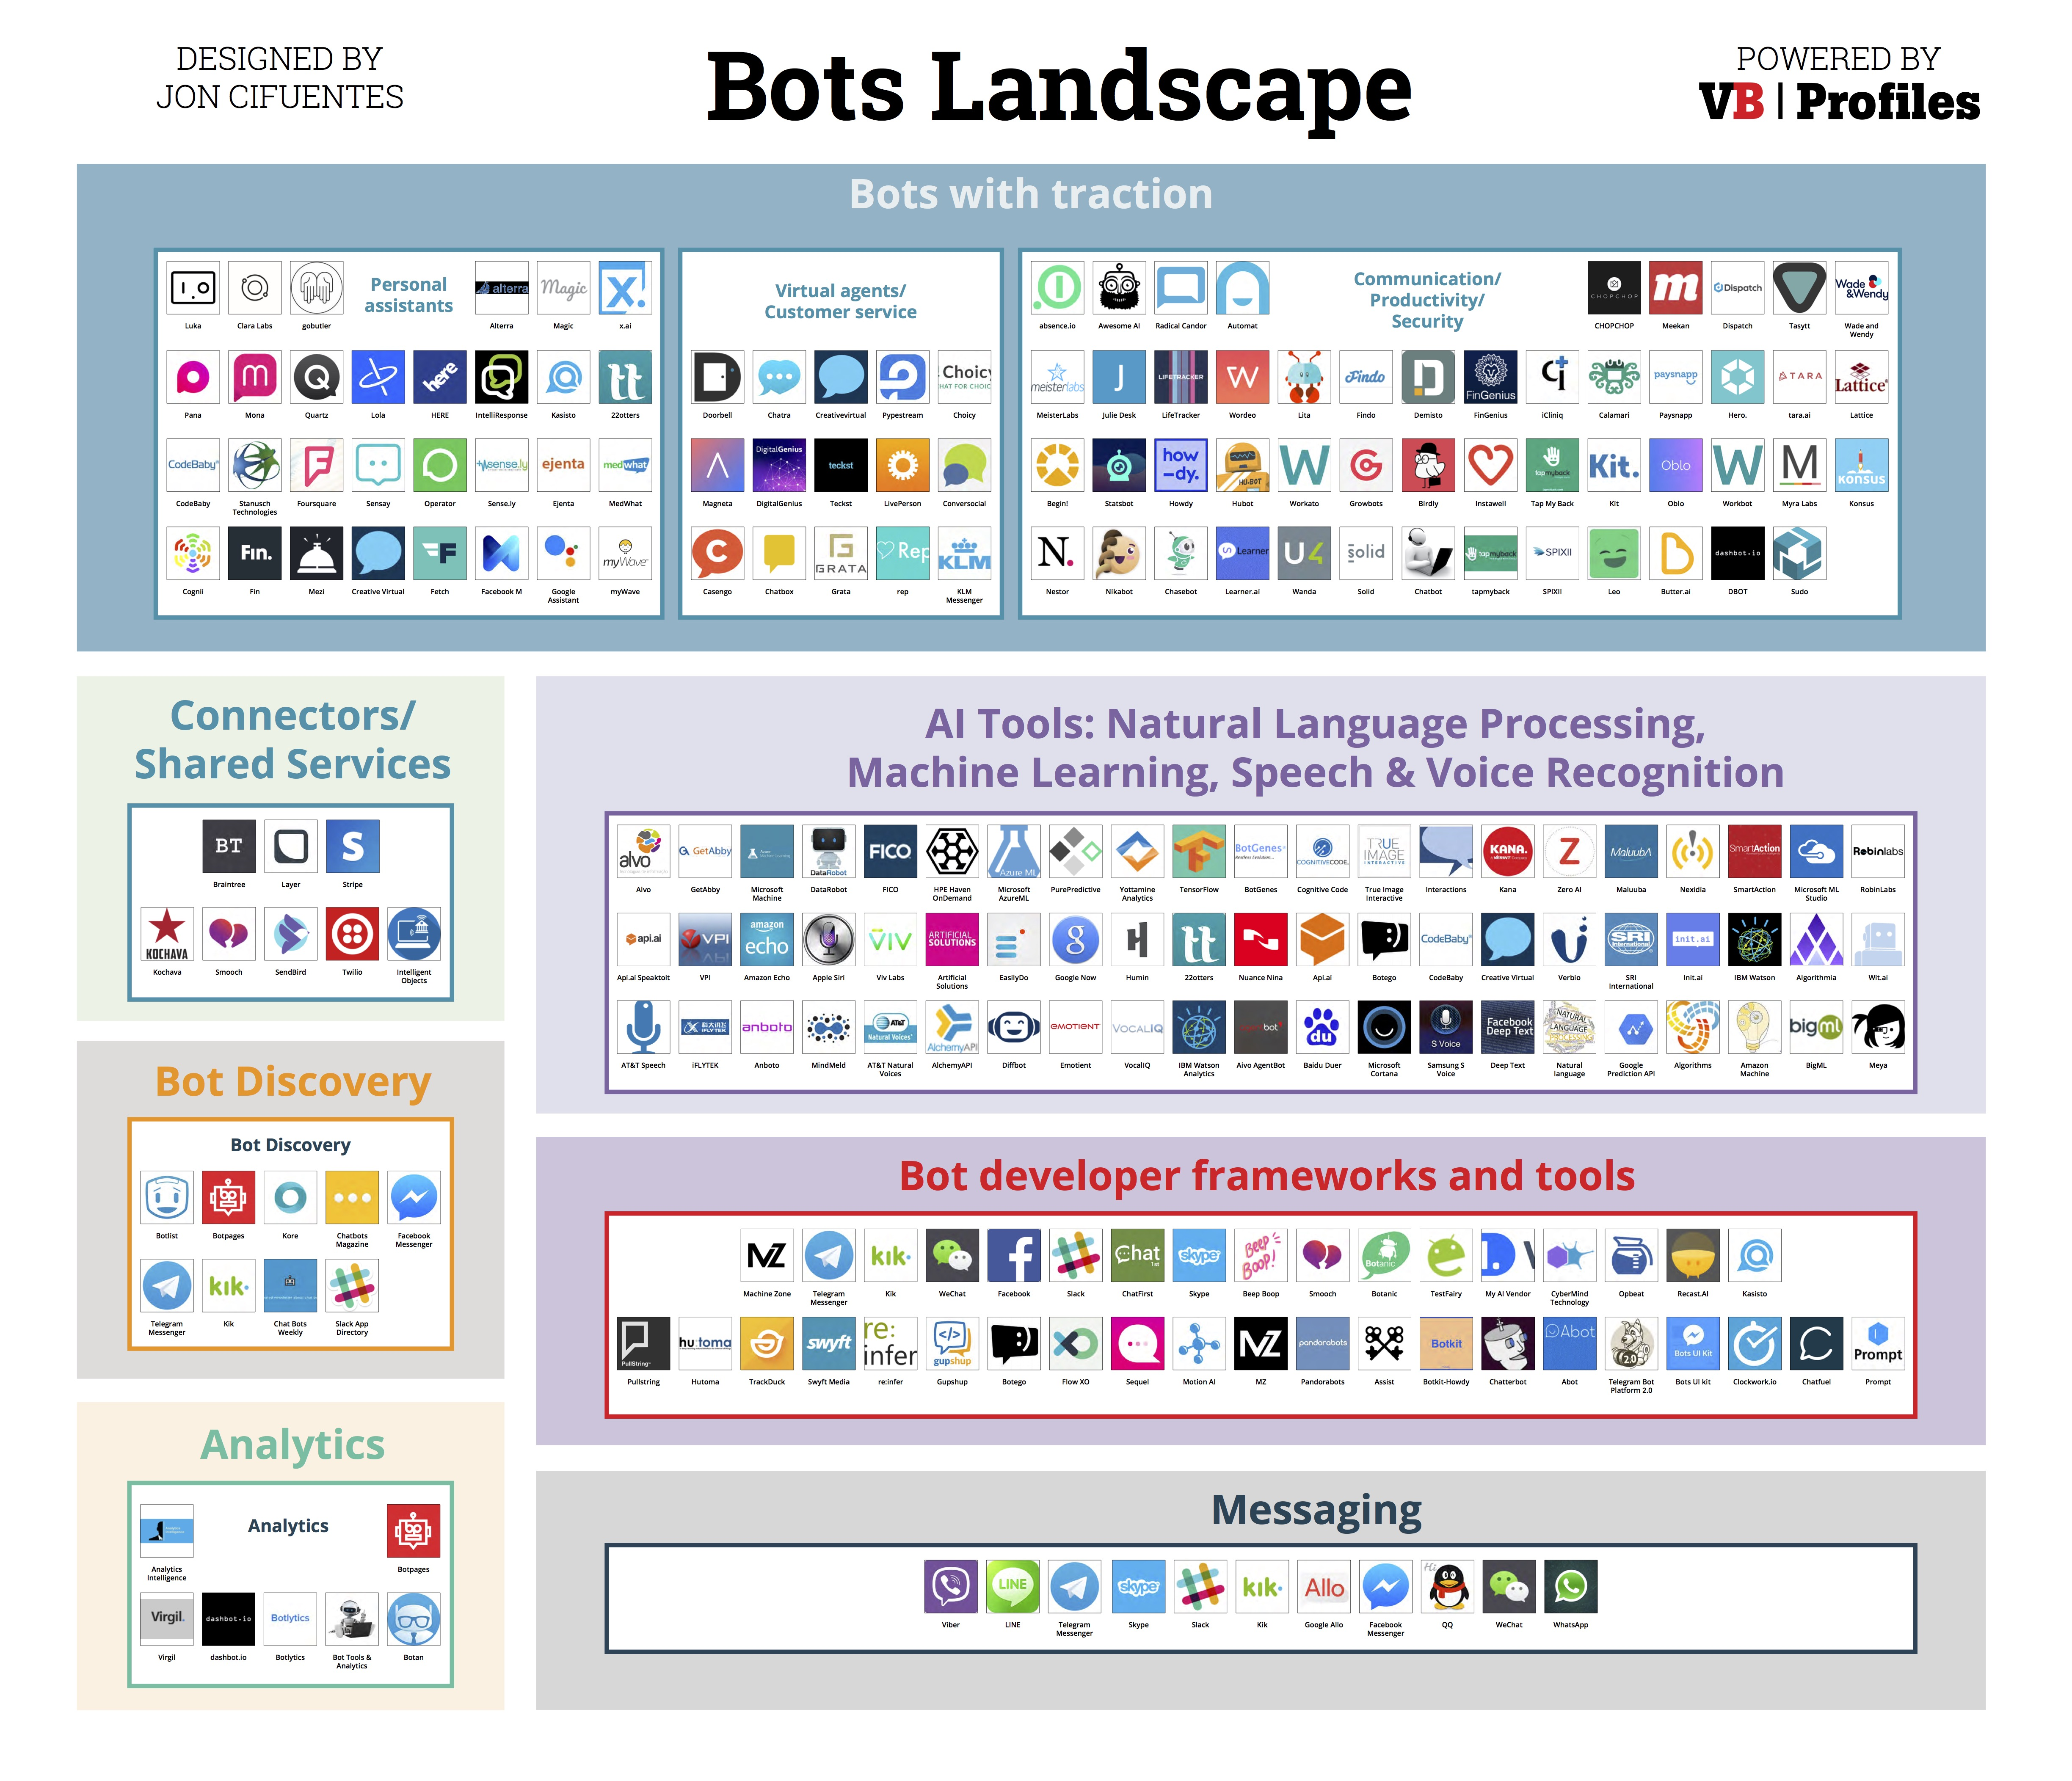 introducing the bots landscape  170  companies   4 billion in funding  thousands of bots